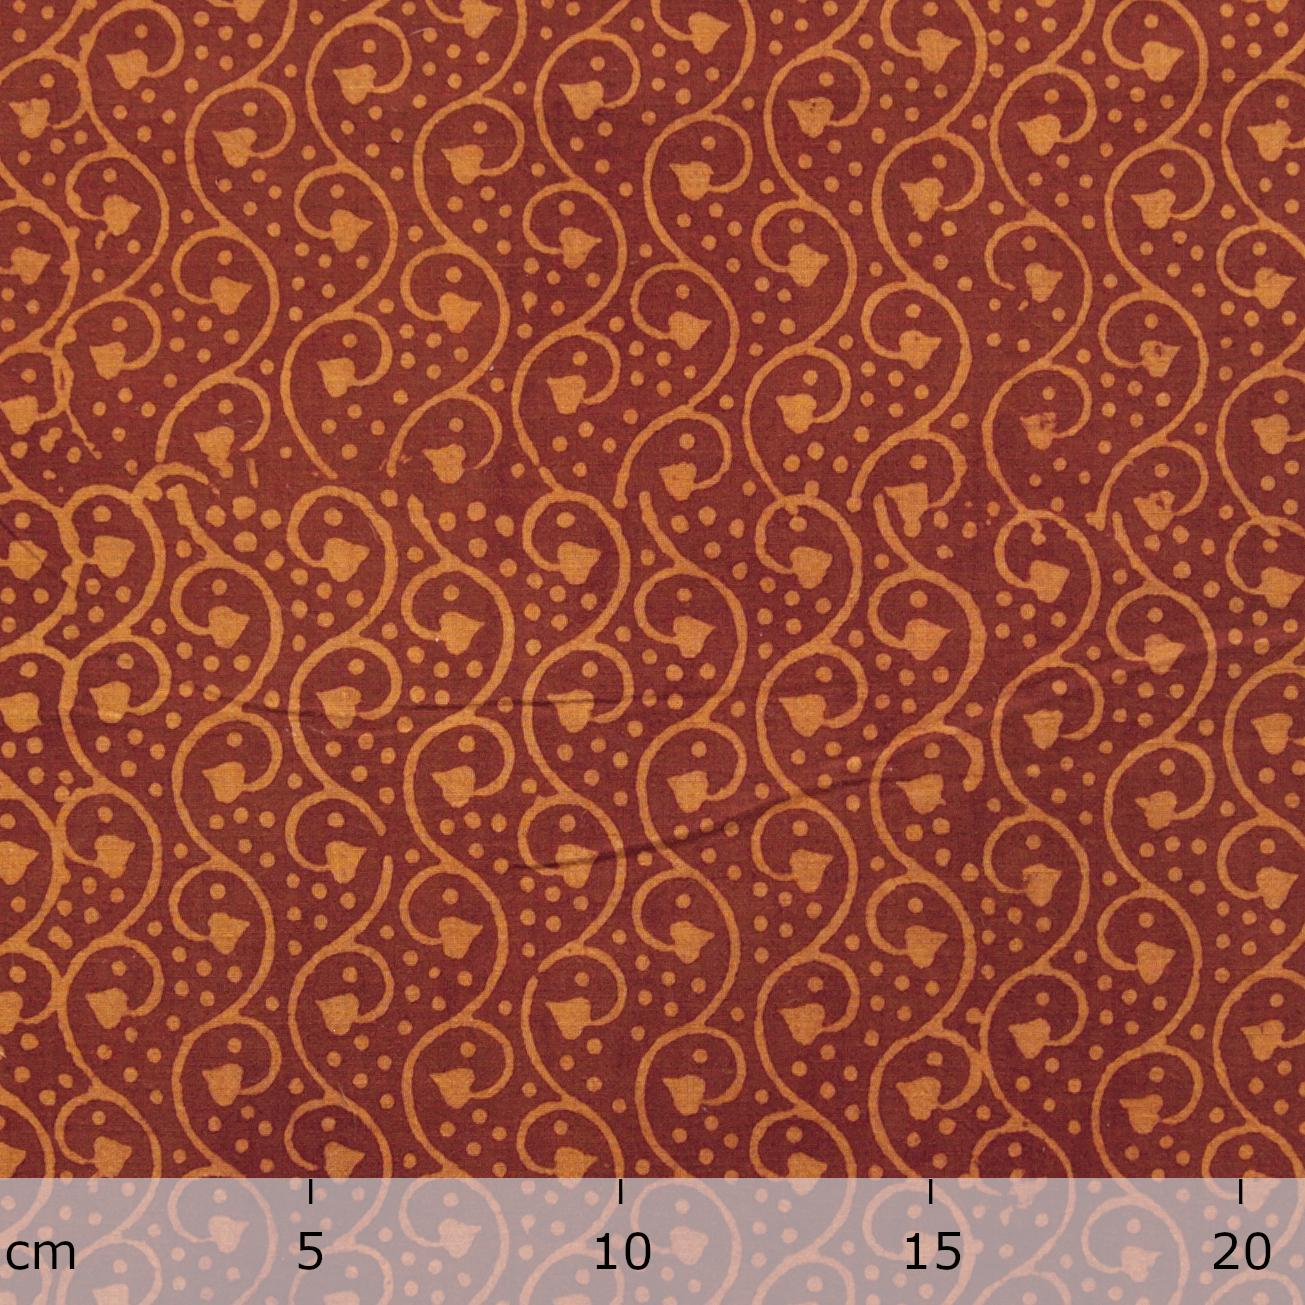 Block Printed Fabric, 100% Cotton, Ajrak Design: Orange Base, Ochre Vine. Ruler